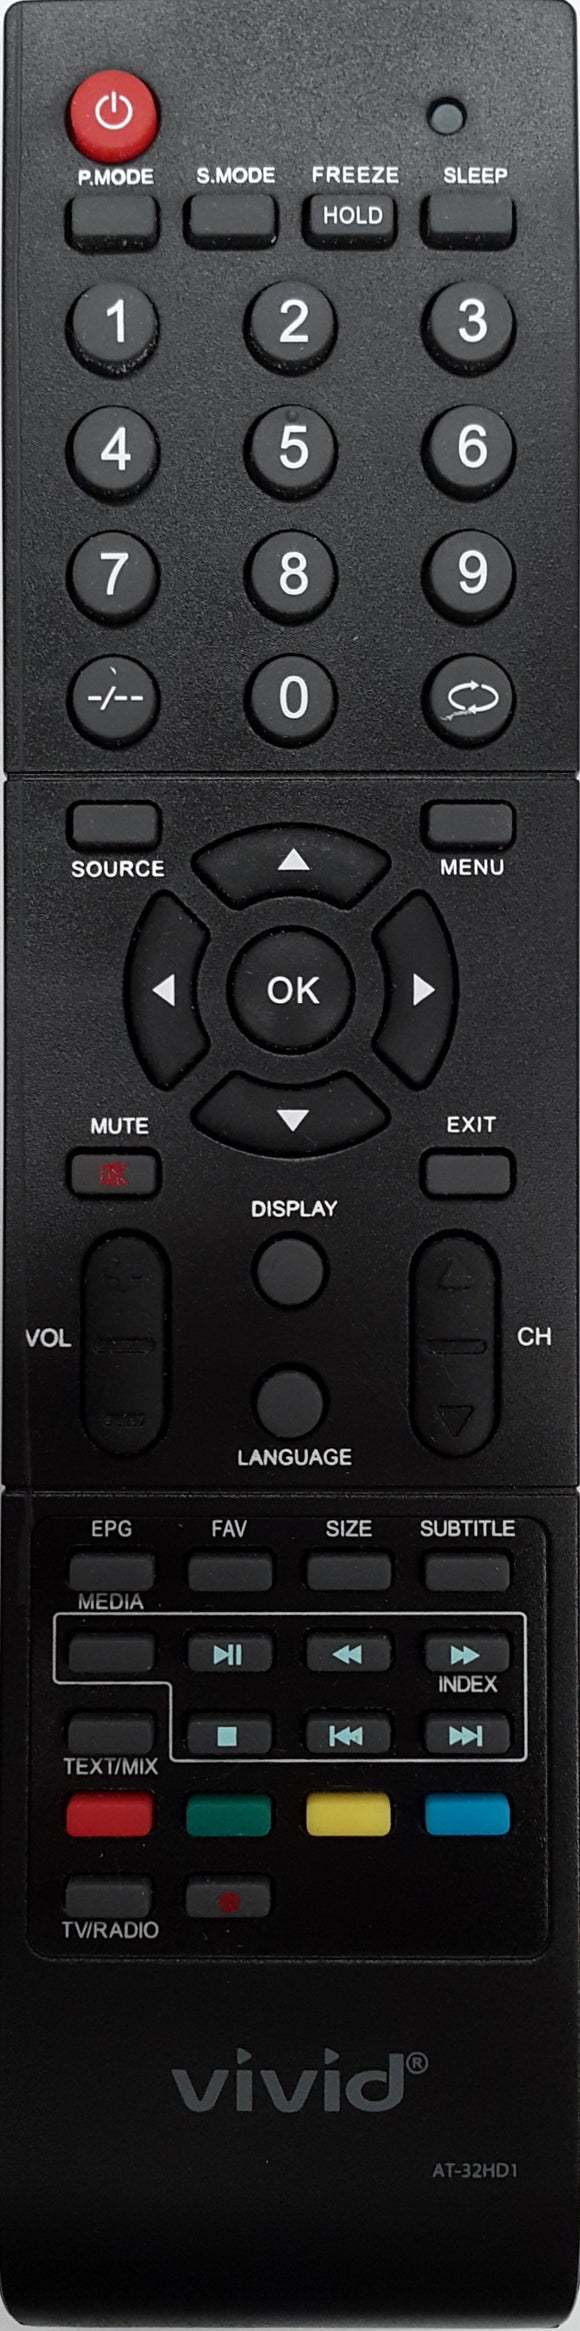 ORIGINAL VIVID REMOTE CONTROL - AT32HD1 LCD  TV - Remote Control Warehouse